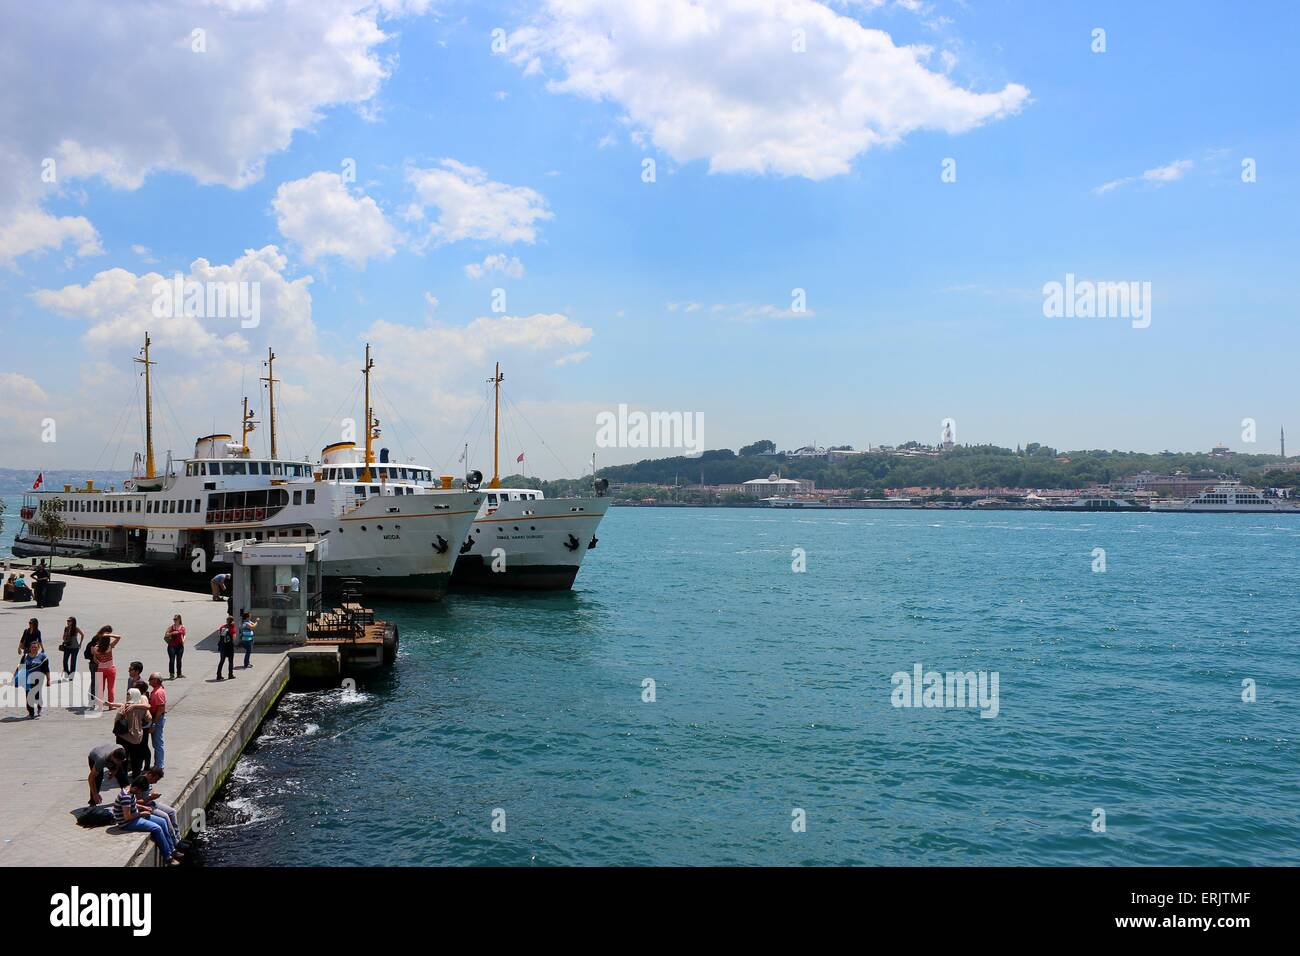 Ferryboats in Karakoy dock, Golden Horn. Topkapi Palace can be seen in the background. - Stock Image